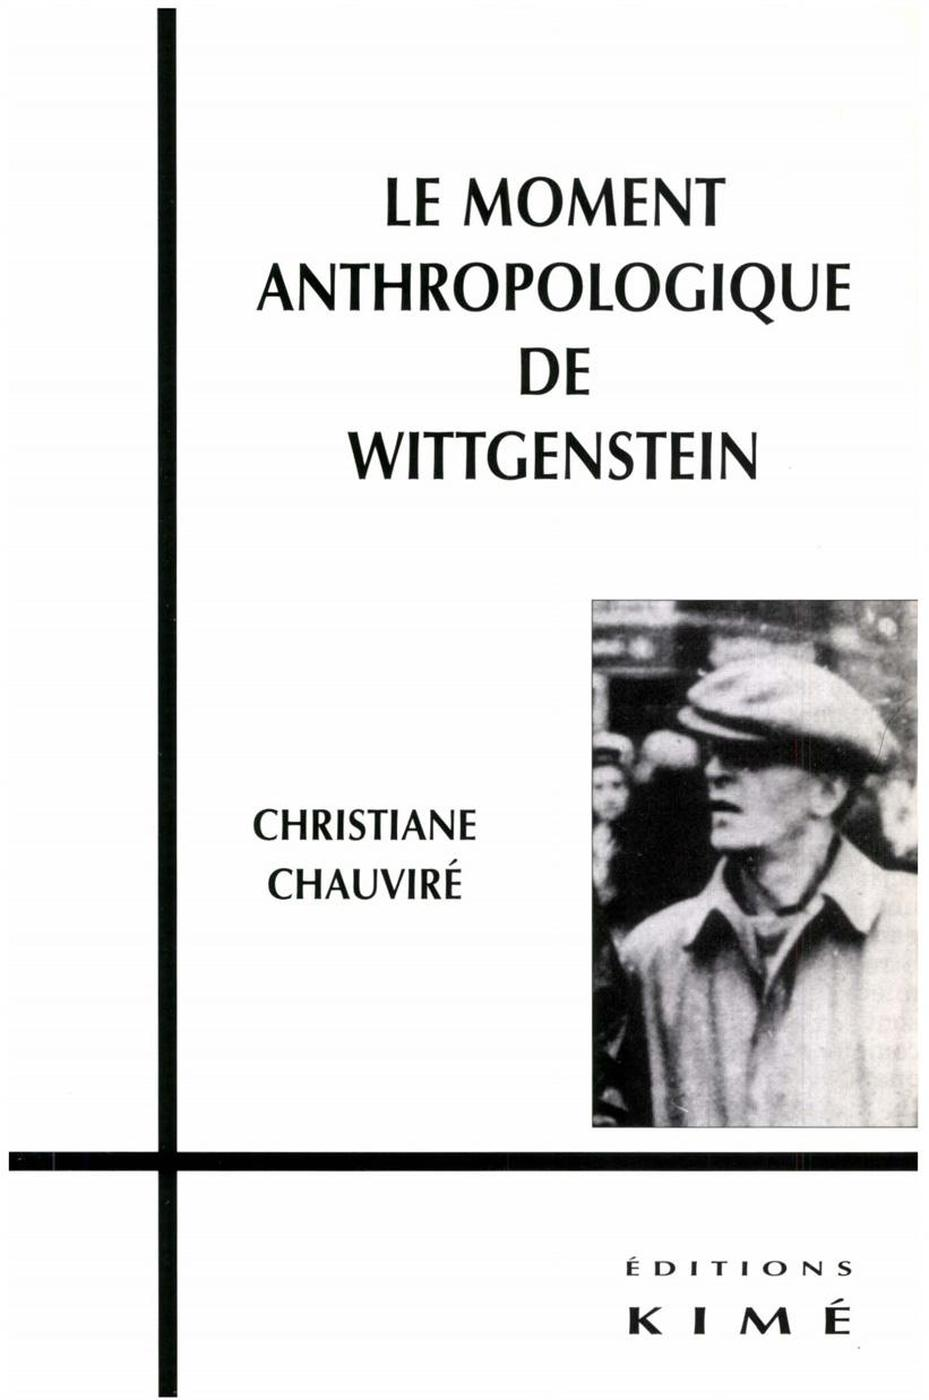 LE MOMENT ANTHROPOLOGIQUE DE WITTGENSTEIN